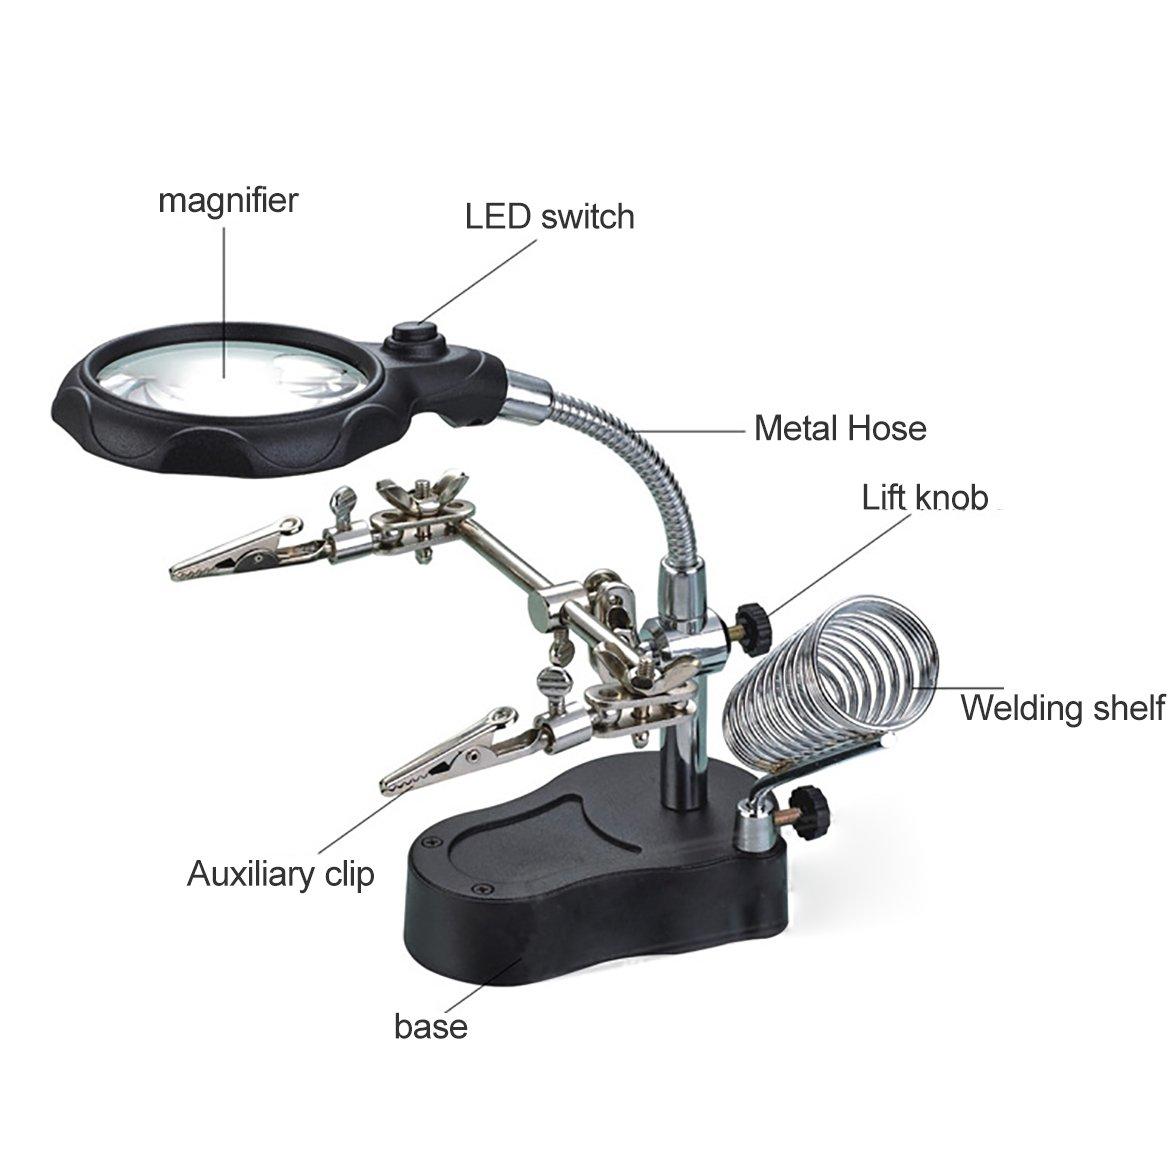 Helping Hands Soldering - ZRAMO LED Light Desktop Magnifier with 360-Degree Roating Lens, 3.5X 12X Illuminated with Clamp and Alligator Clips Red Hands Free Bench Magnifier